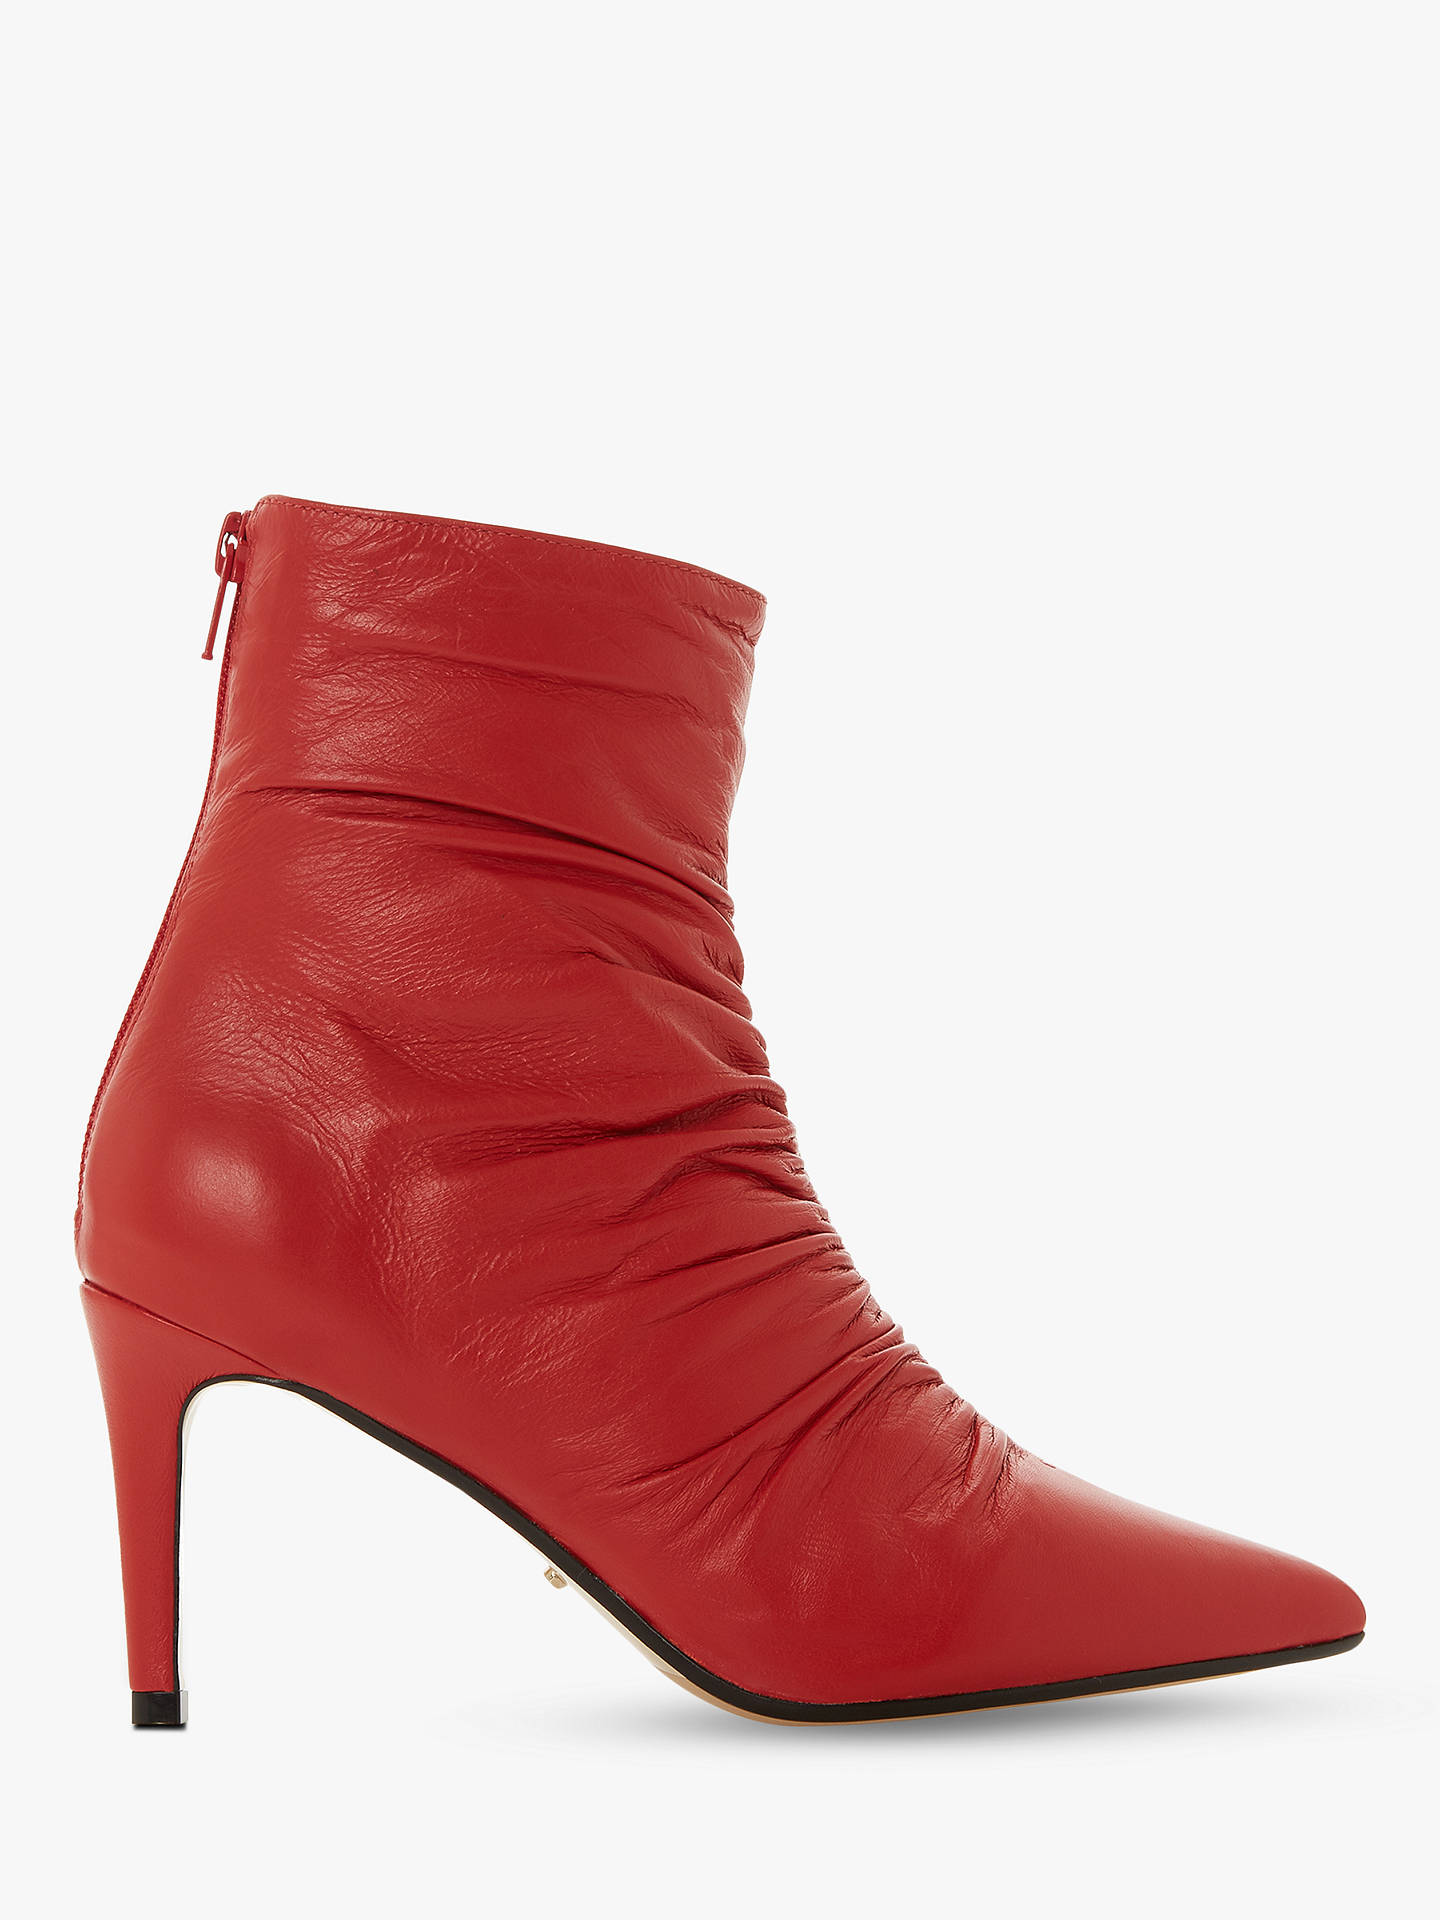 BuyDune Oasis Stiletto Heel Ankle Boots, Red Leather, 5 Online at johnlewis.com